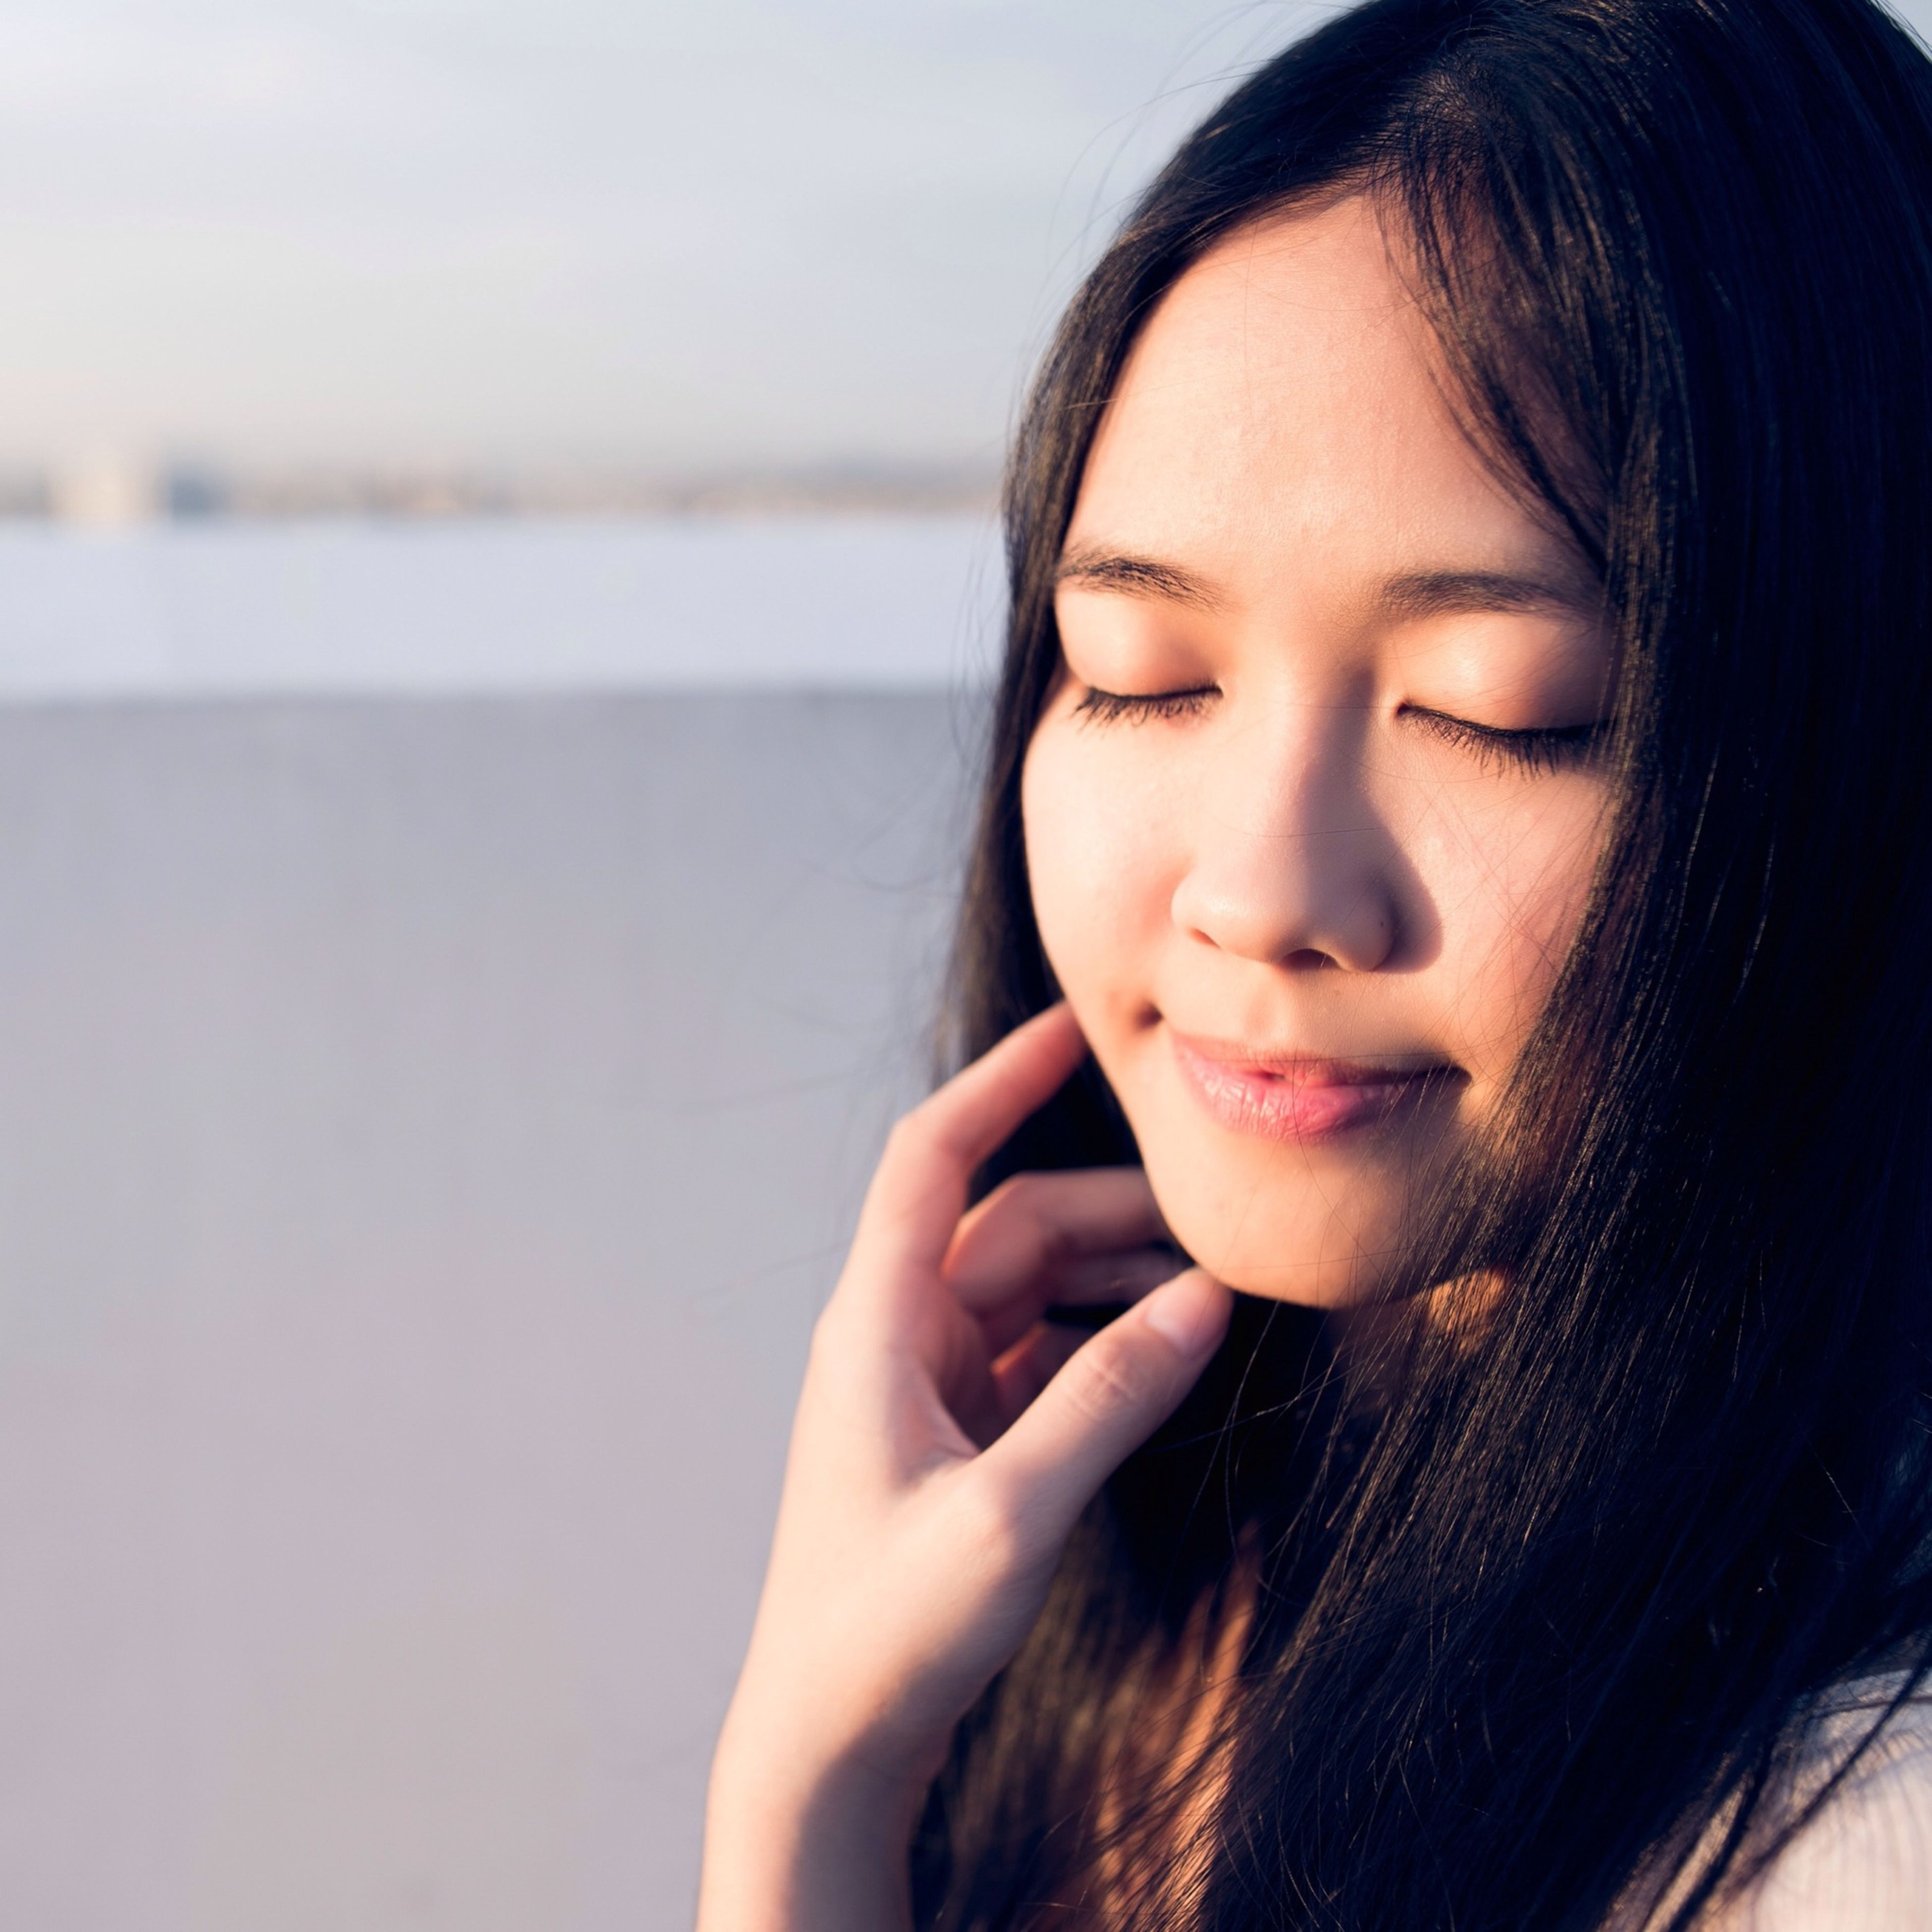 person, young adult, young women, looking at camera, headshot, portrait, lifestyles, front view, long hair, human face, close-up, leisure activity, smiling, contemplation, childhood, head and shoulders